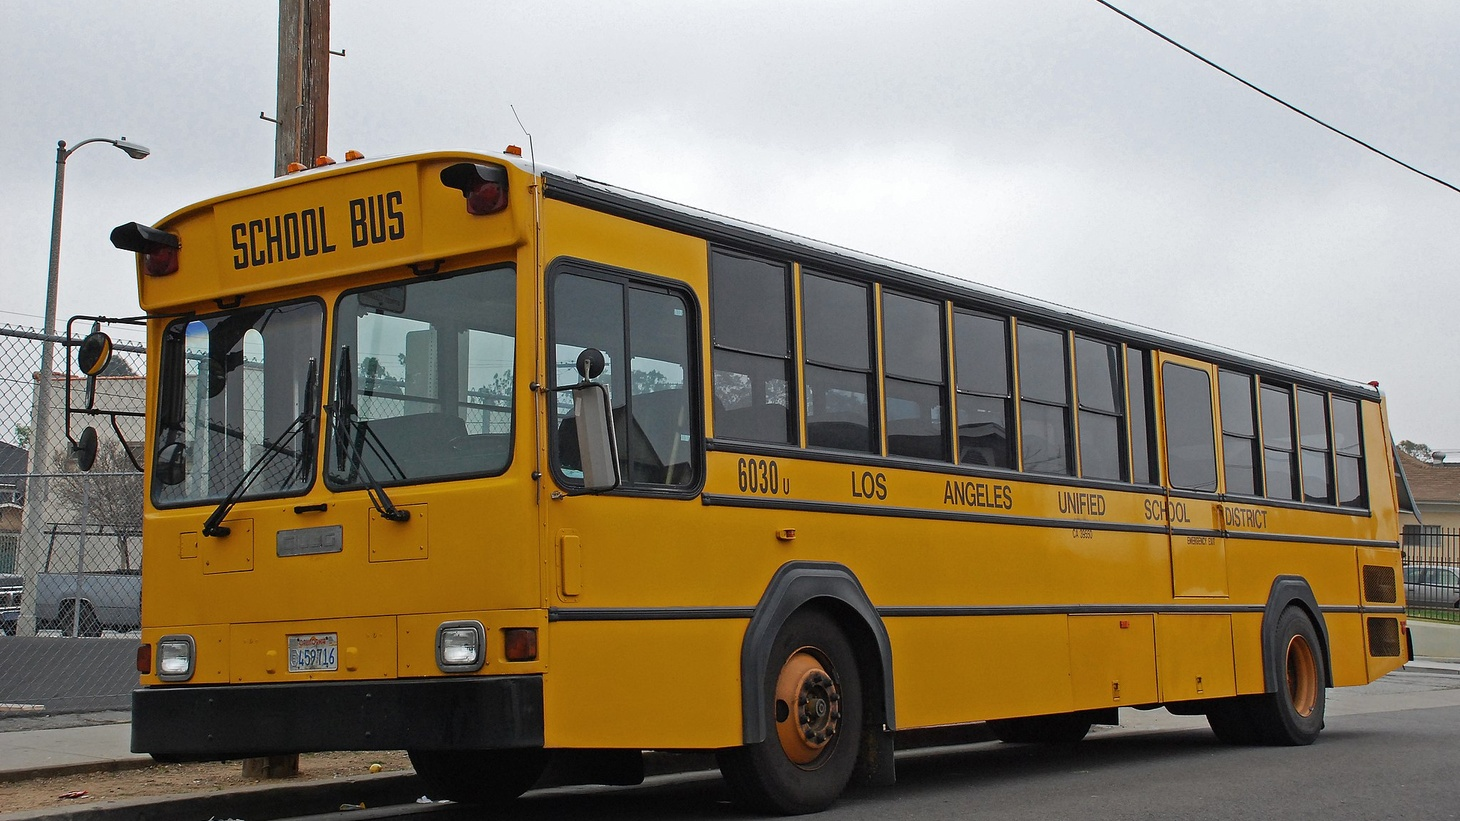 LAUSD school bus. Credit: Wikimedia Commons.